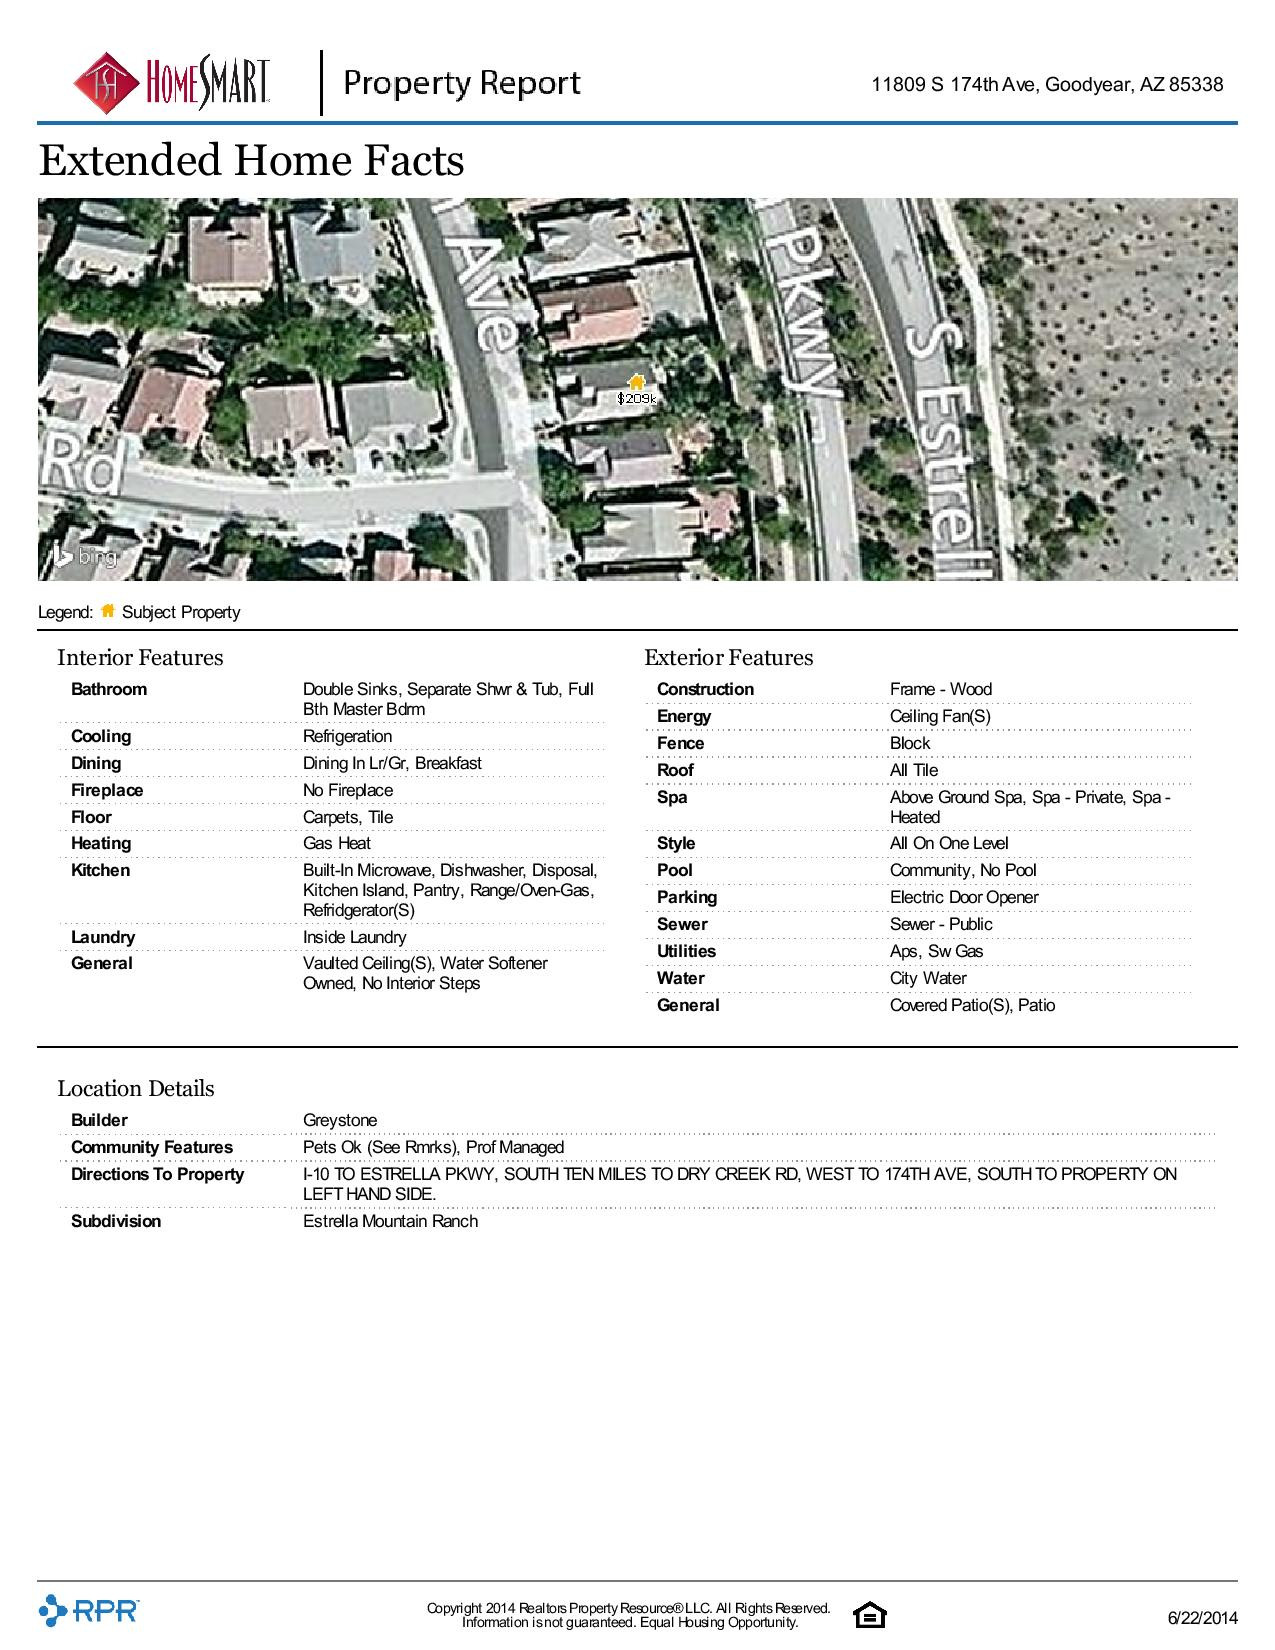 11809-S-174th-Ave-Goodyear-AZ-85338-page-004